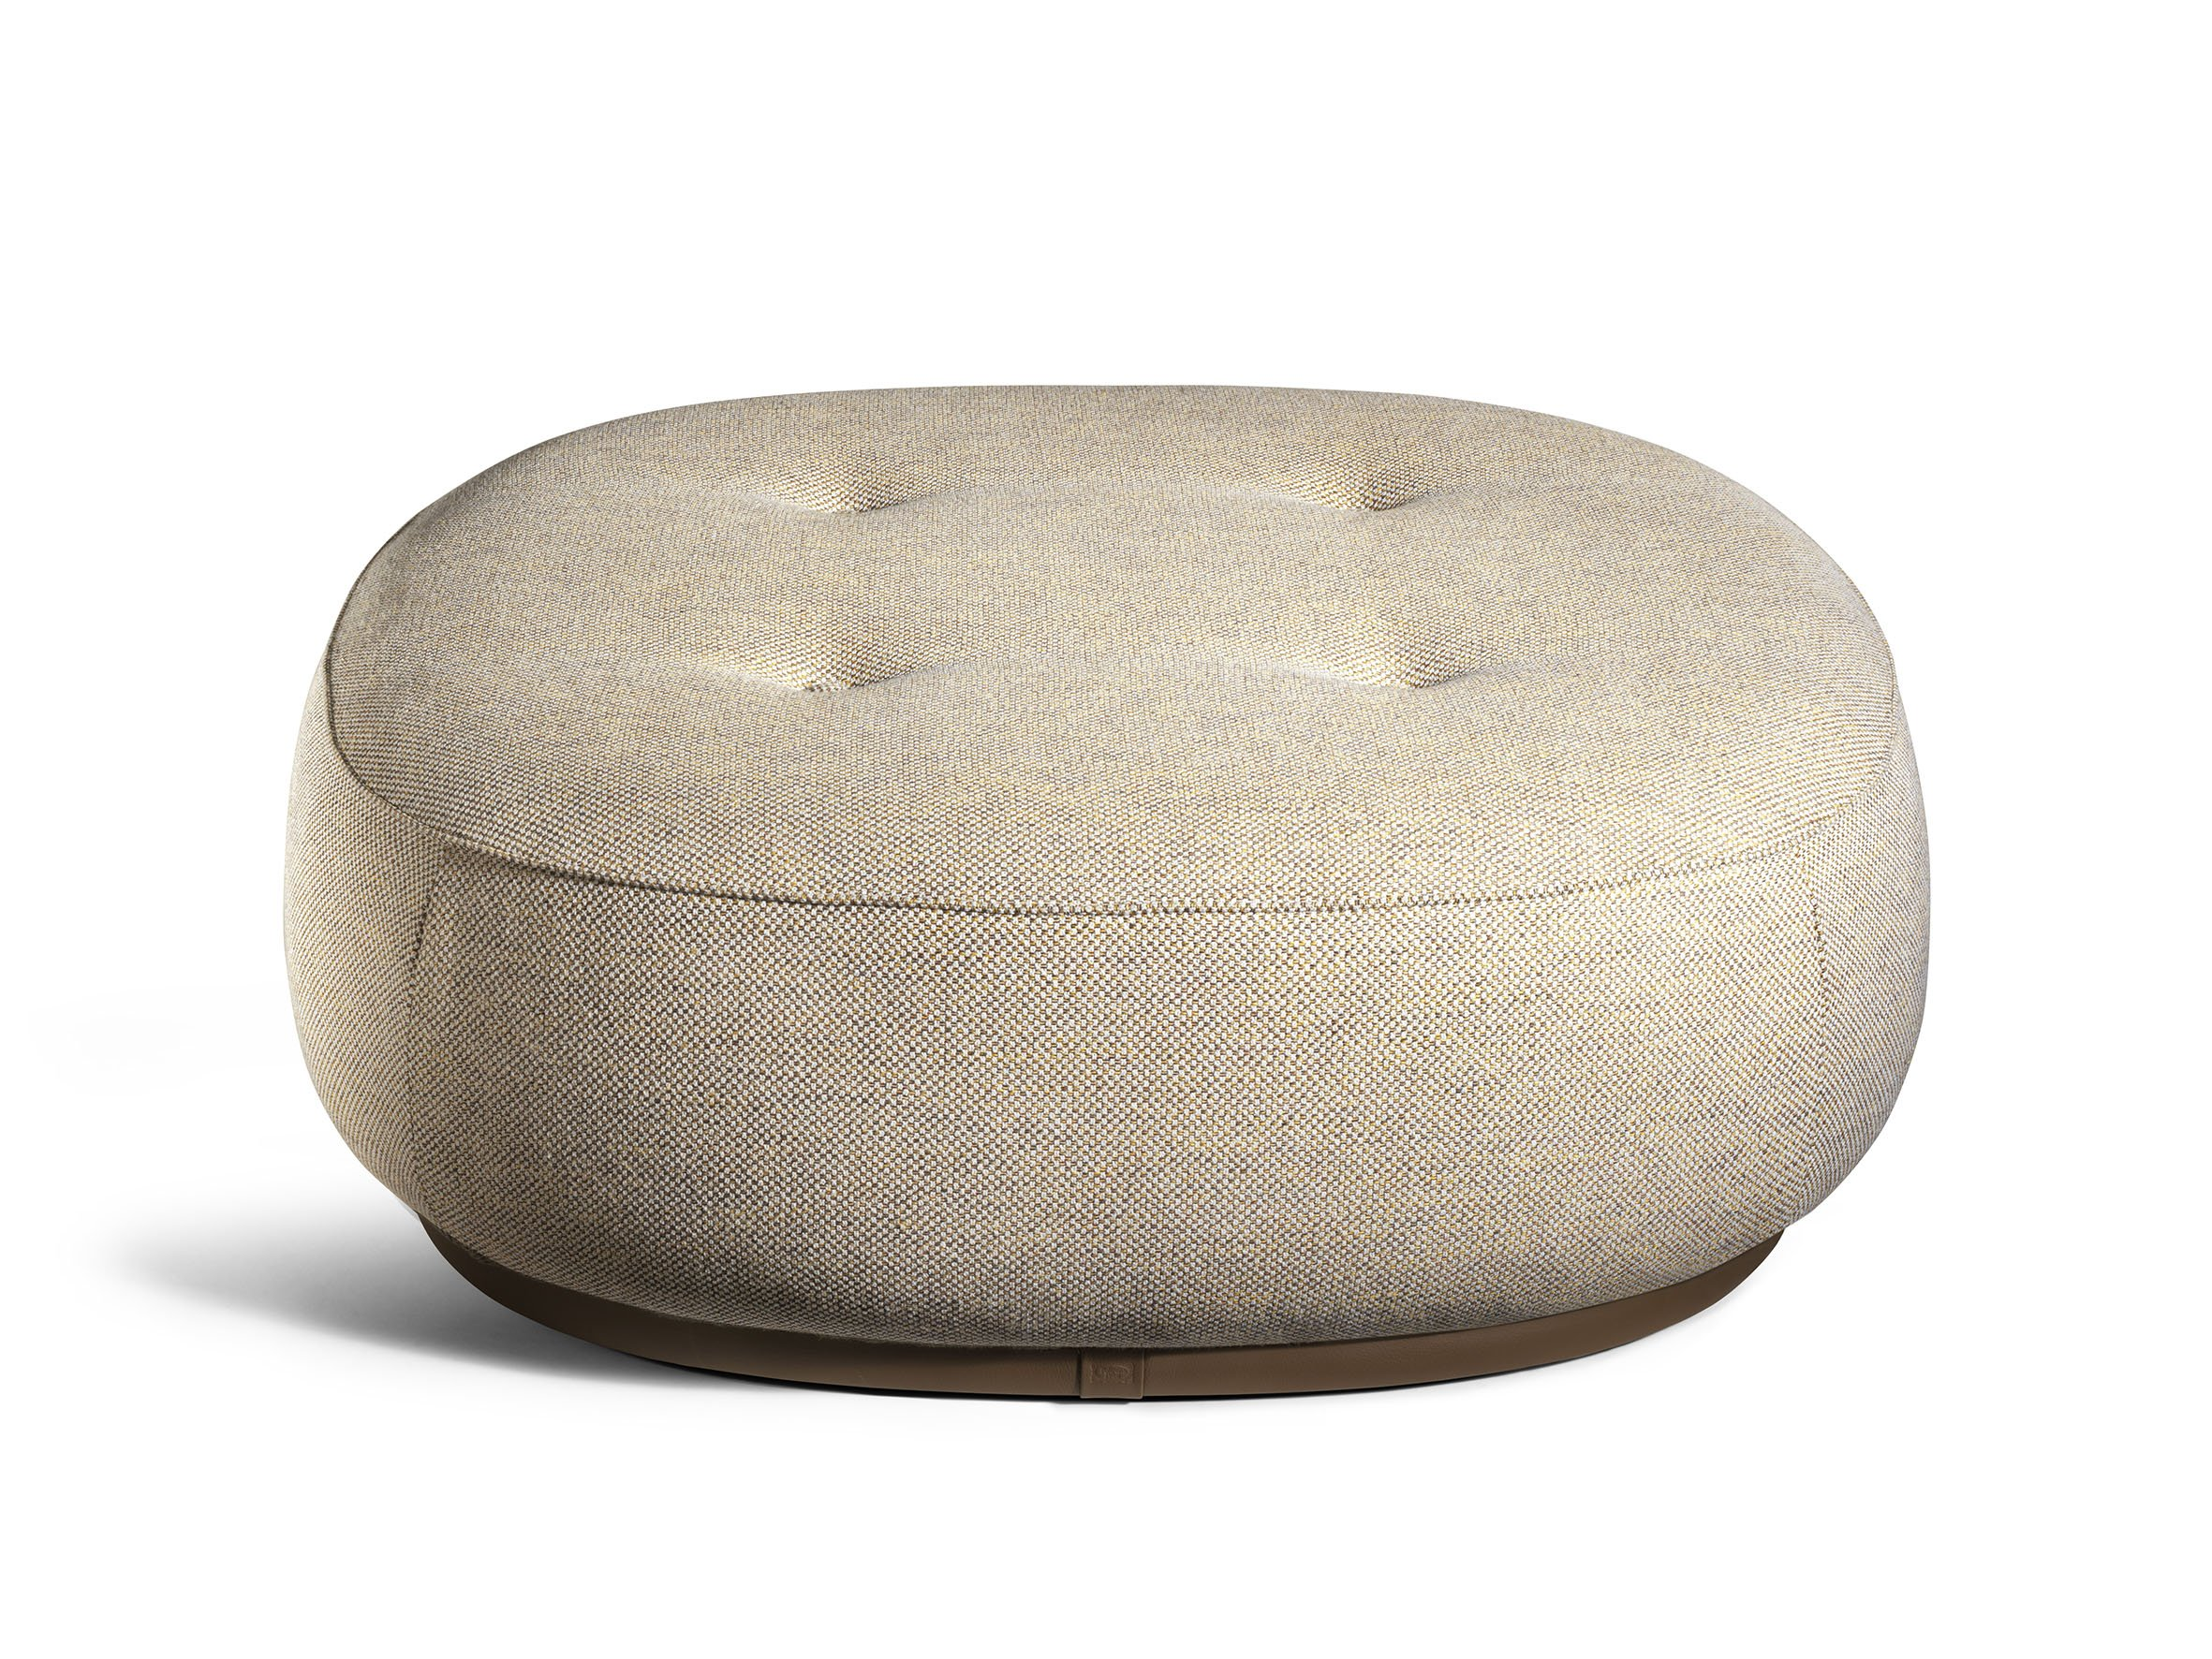 Lepli fabric pouf the collection sofa and armchairs collection by poltrona frau design kensaku - Design pouf ...